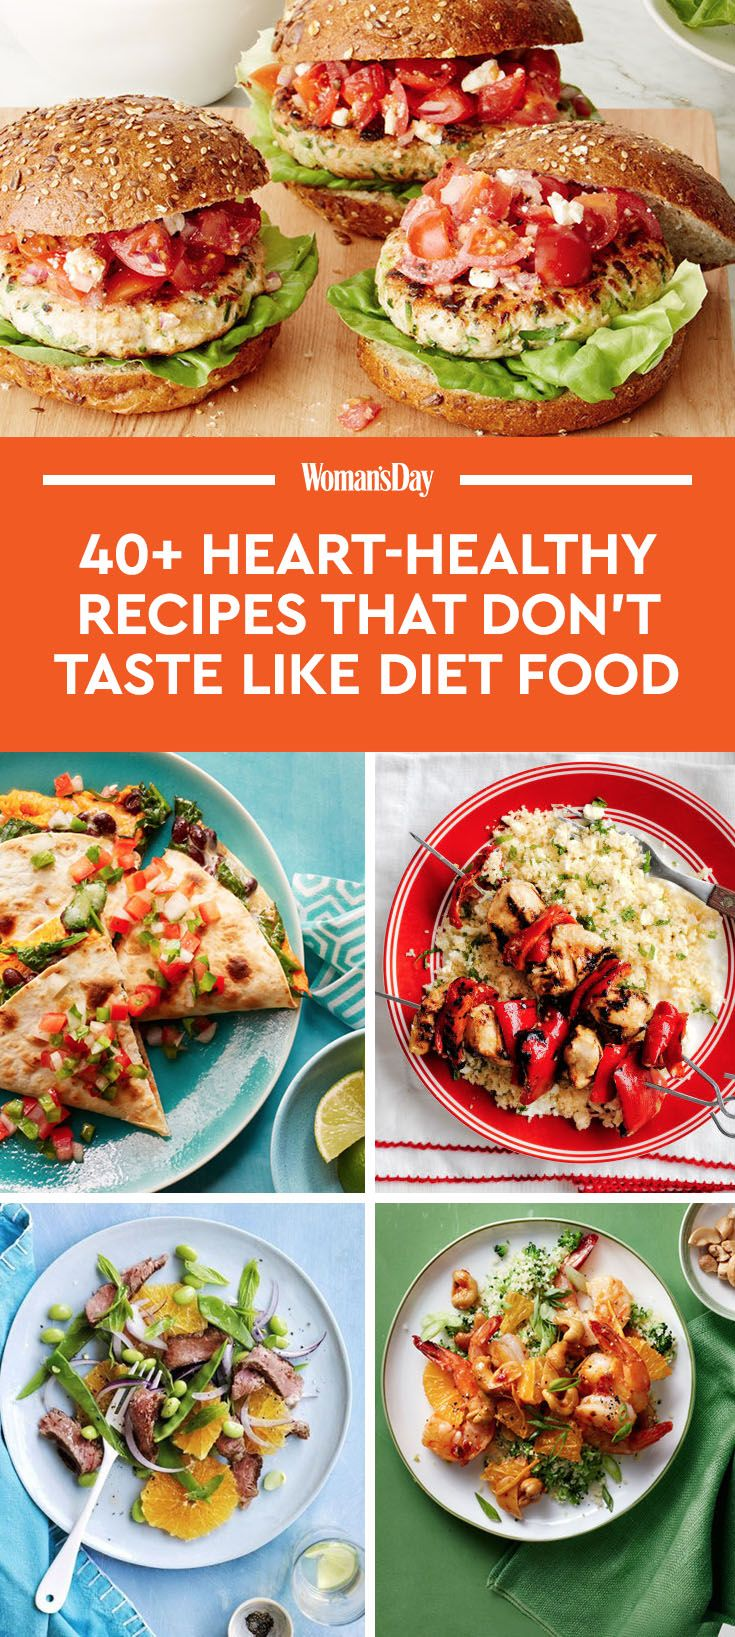 62 heart healthy dinner recipes that dont taste like diet food 62 heart healthy dinner recipes that dont taste like diet food heart healthy meals forumfinder Image collections